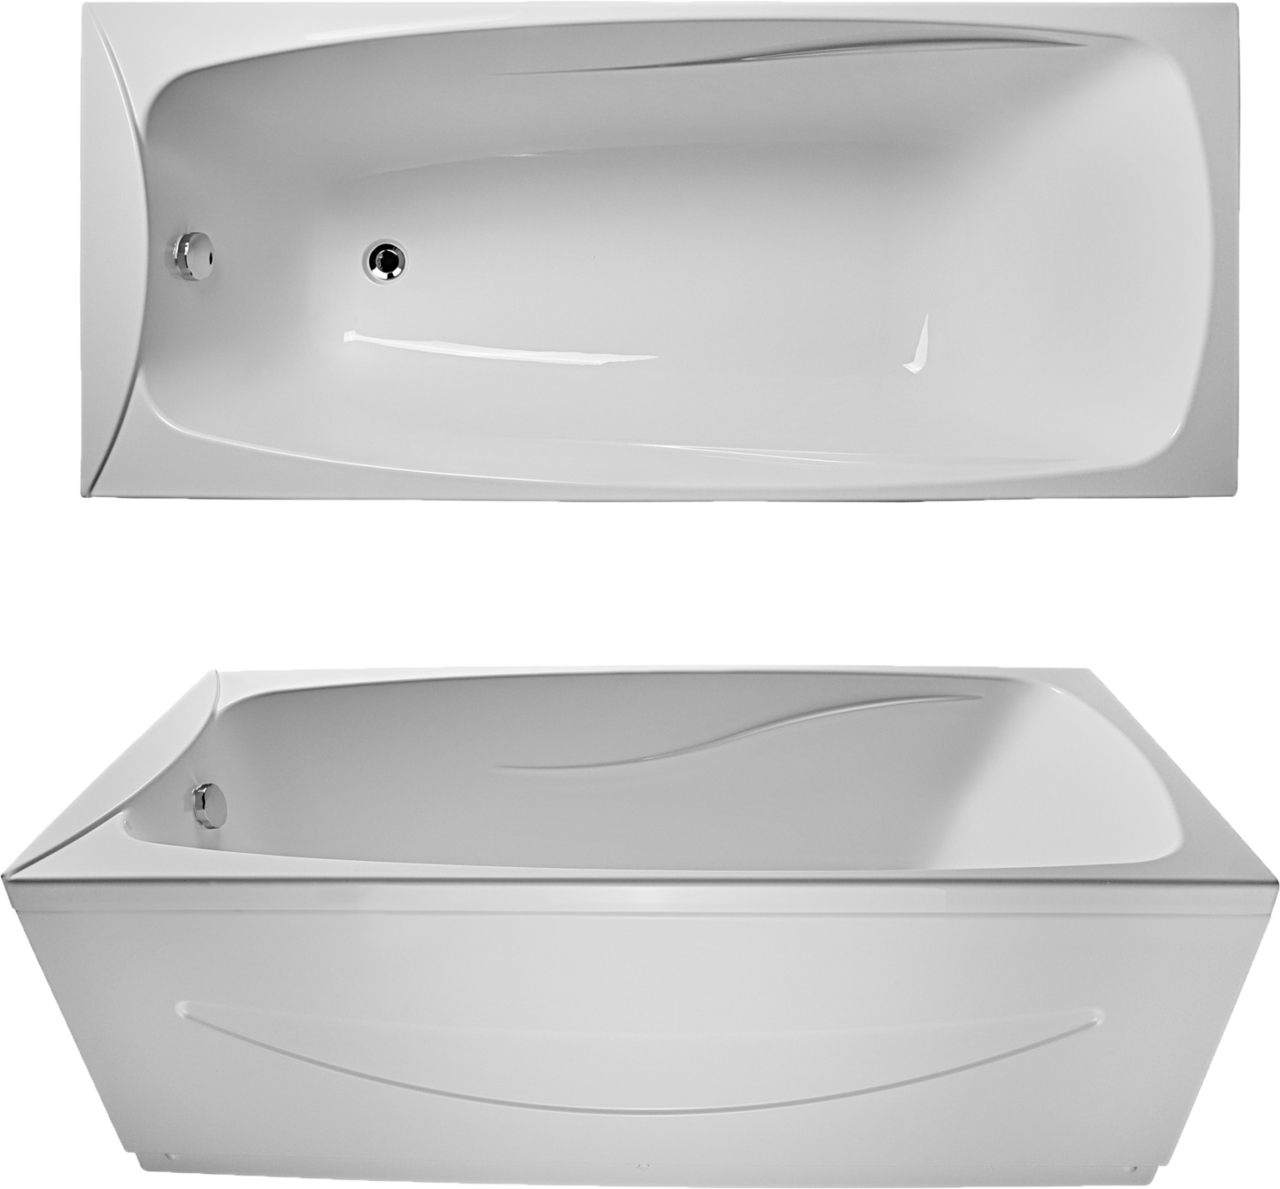 Bathtub Png Transparent Images Free Icons And Png